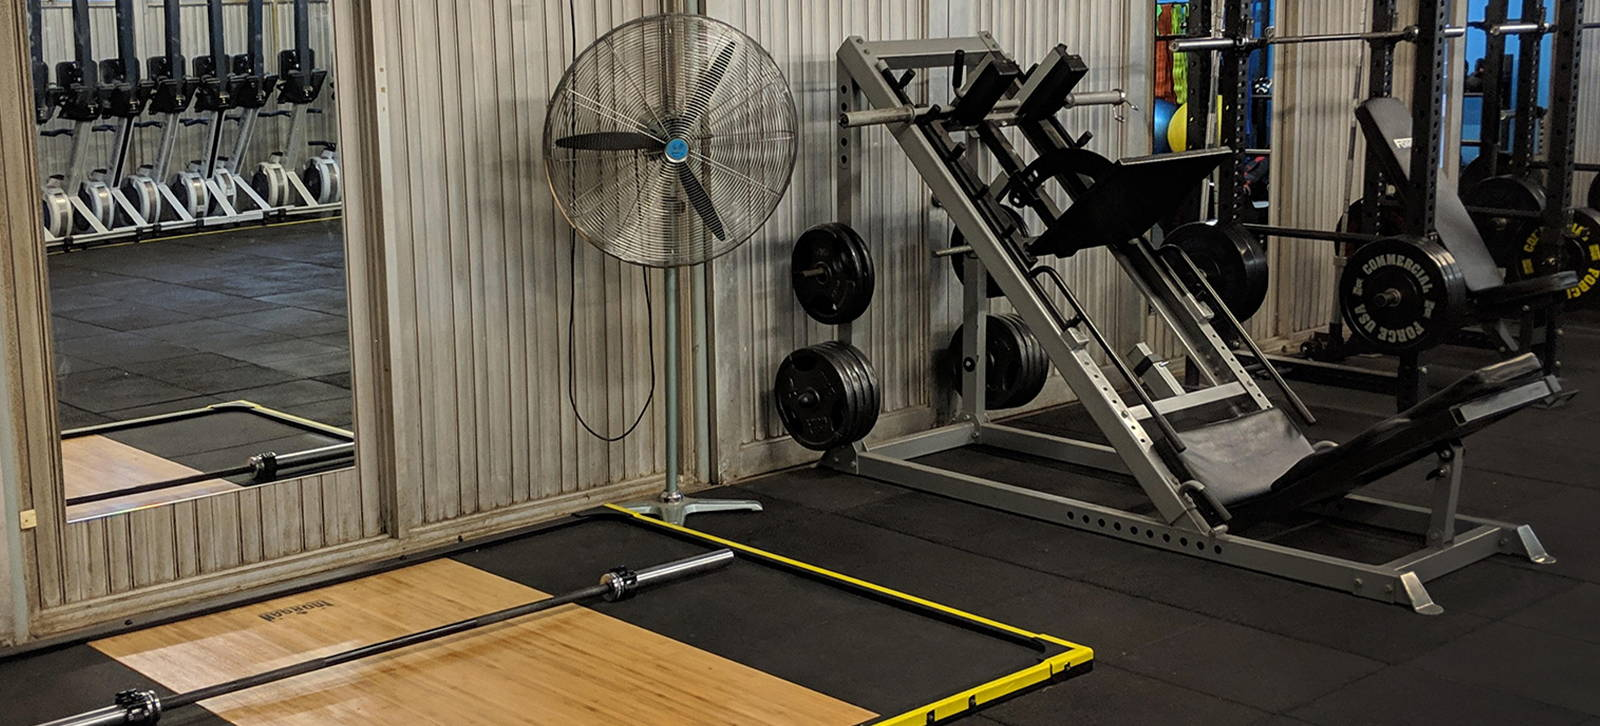 Commercial Gym Equipment Unley High School Adelaide